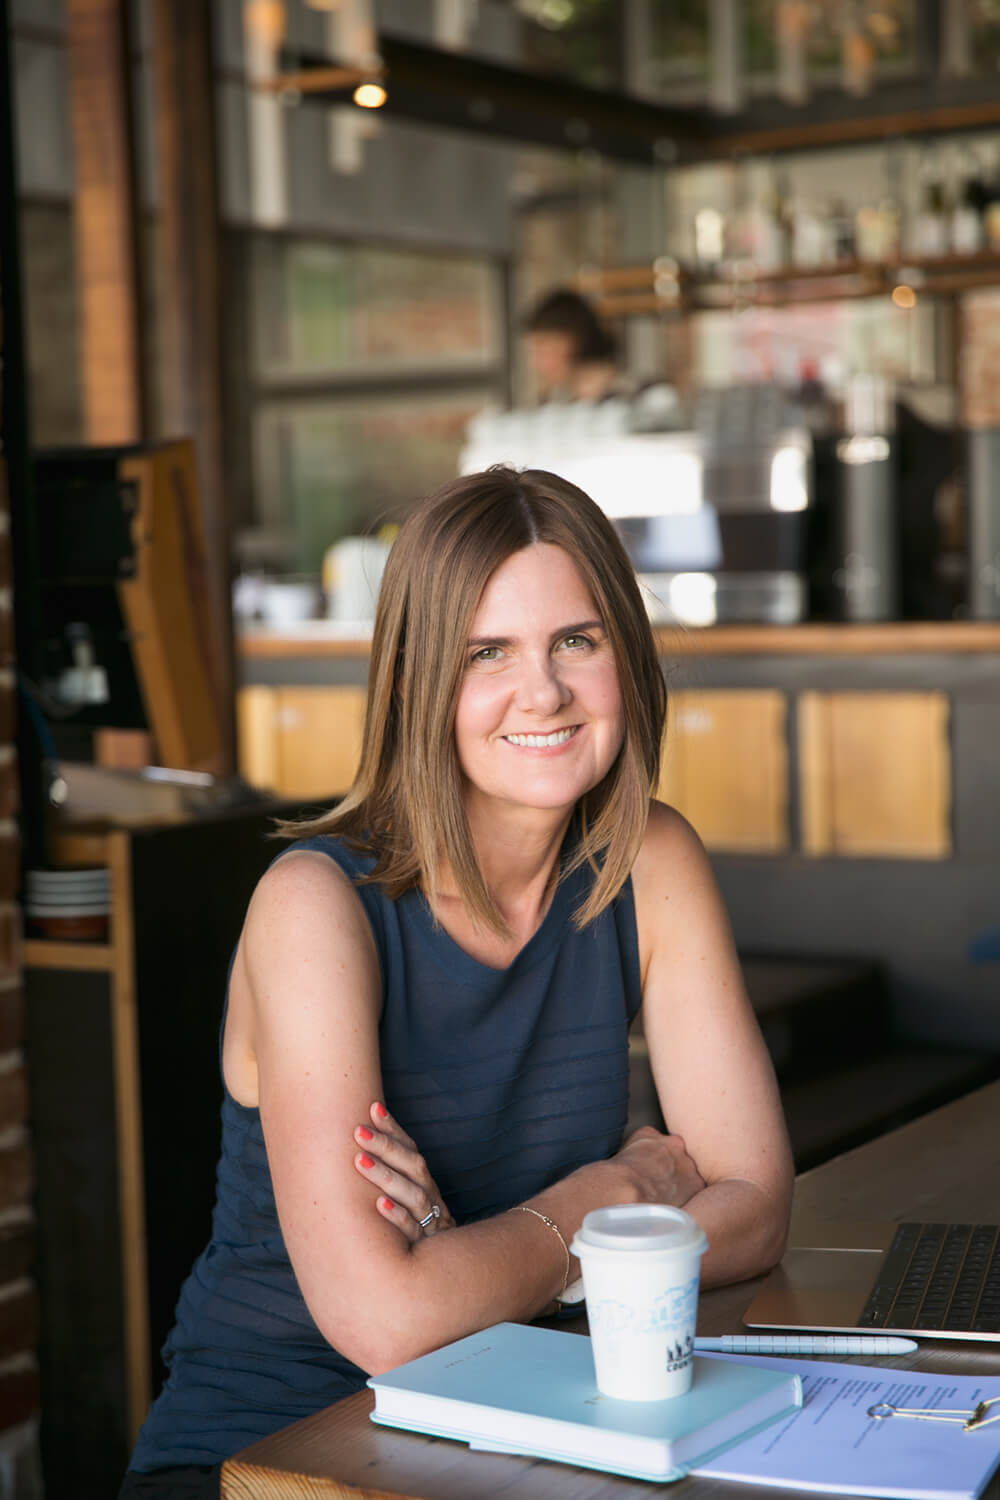 Simone Beever is an editor and proofreader for business owners. Based in Melbourne, Australia. simonebeever.com